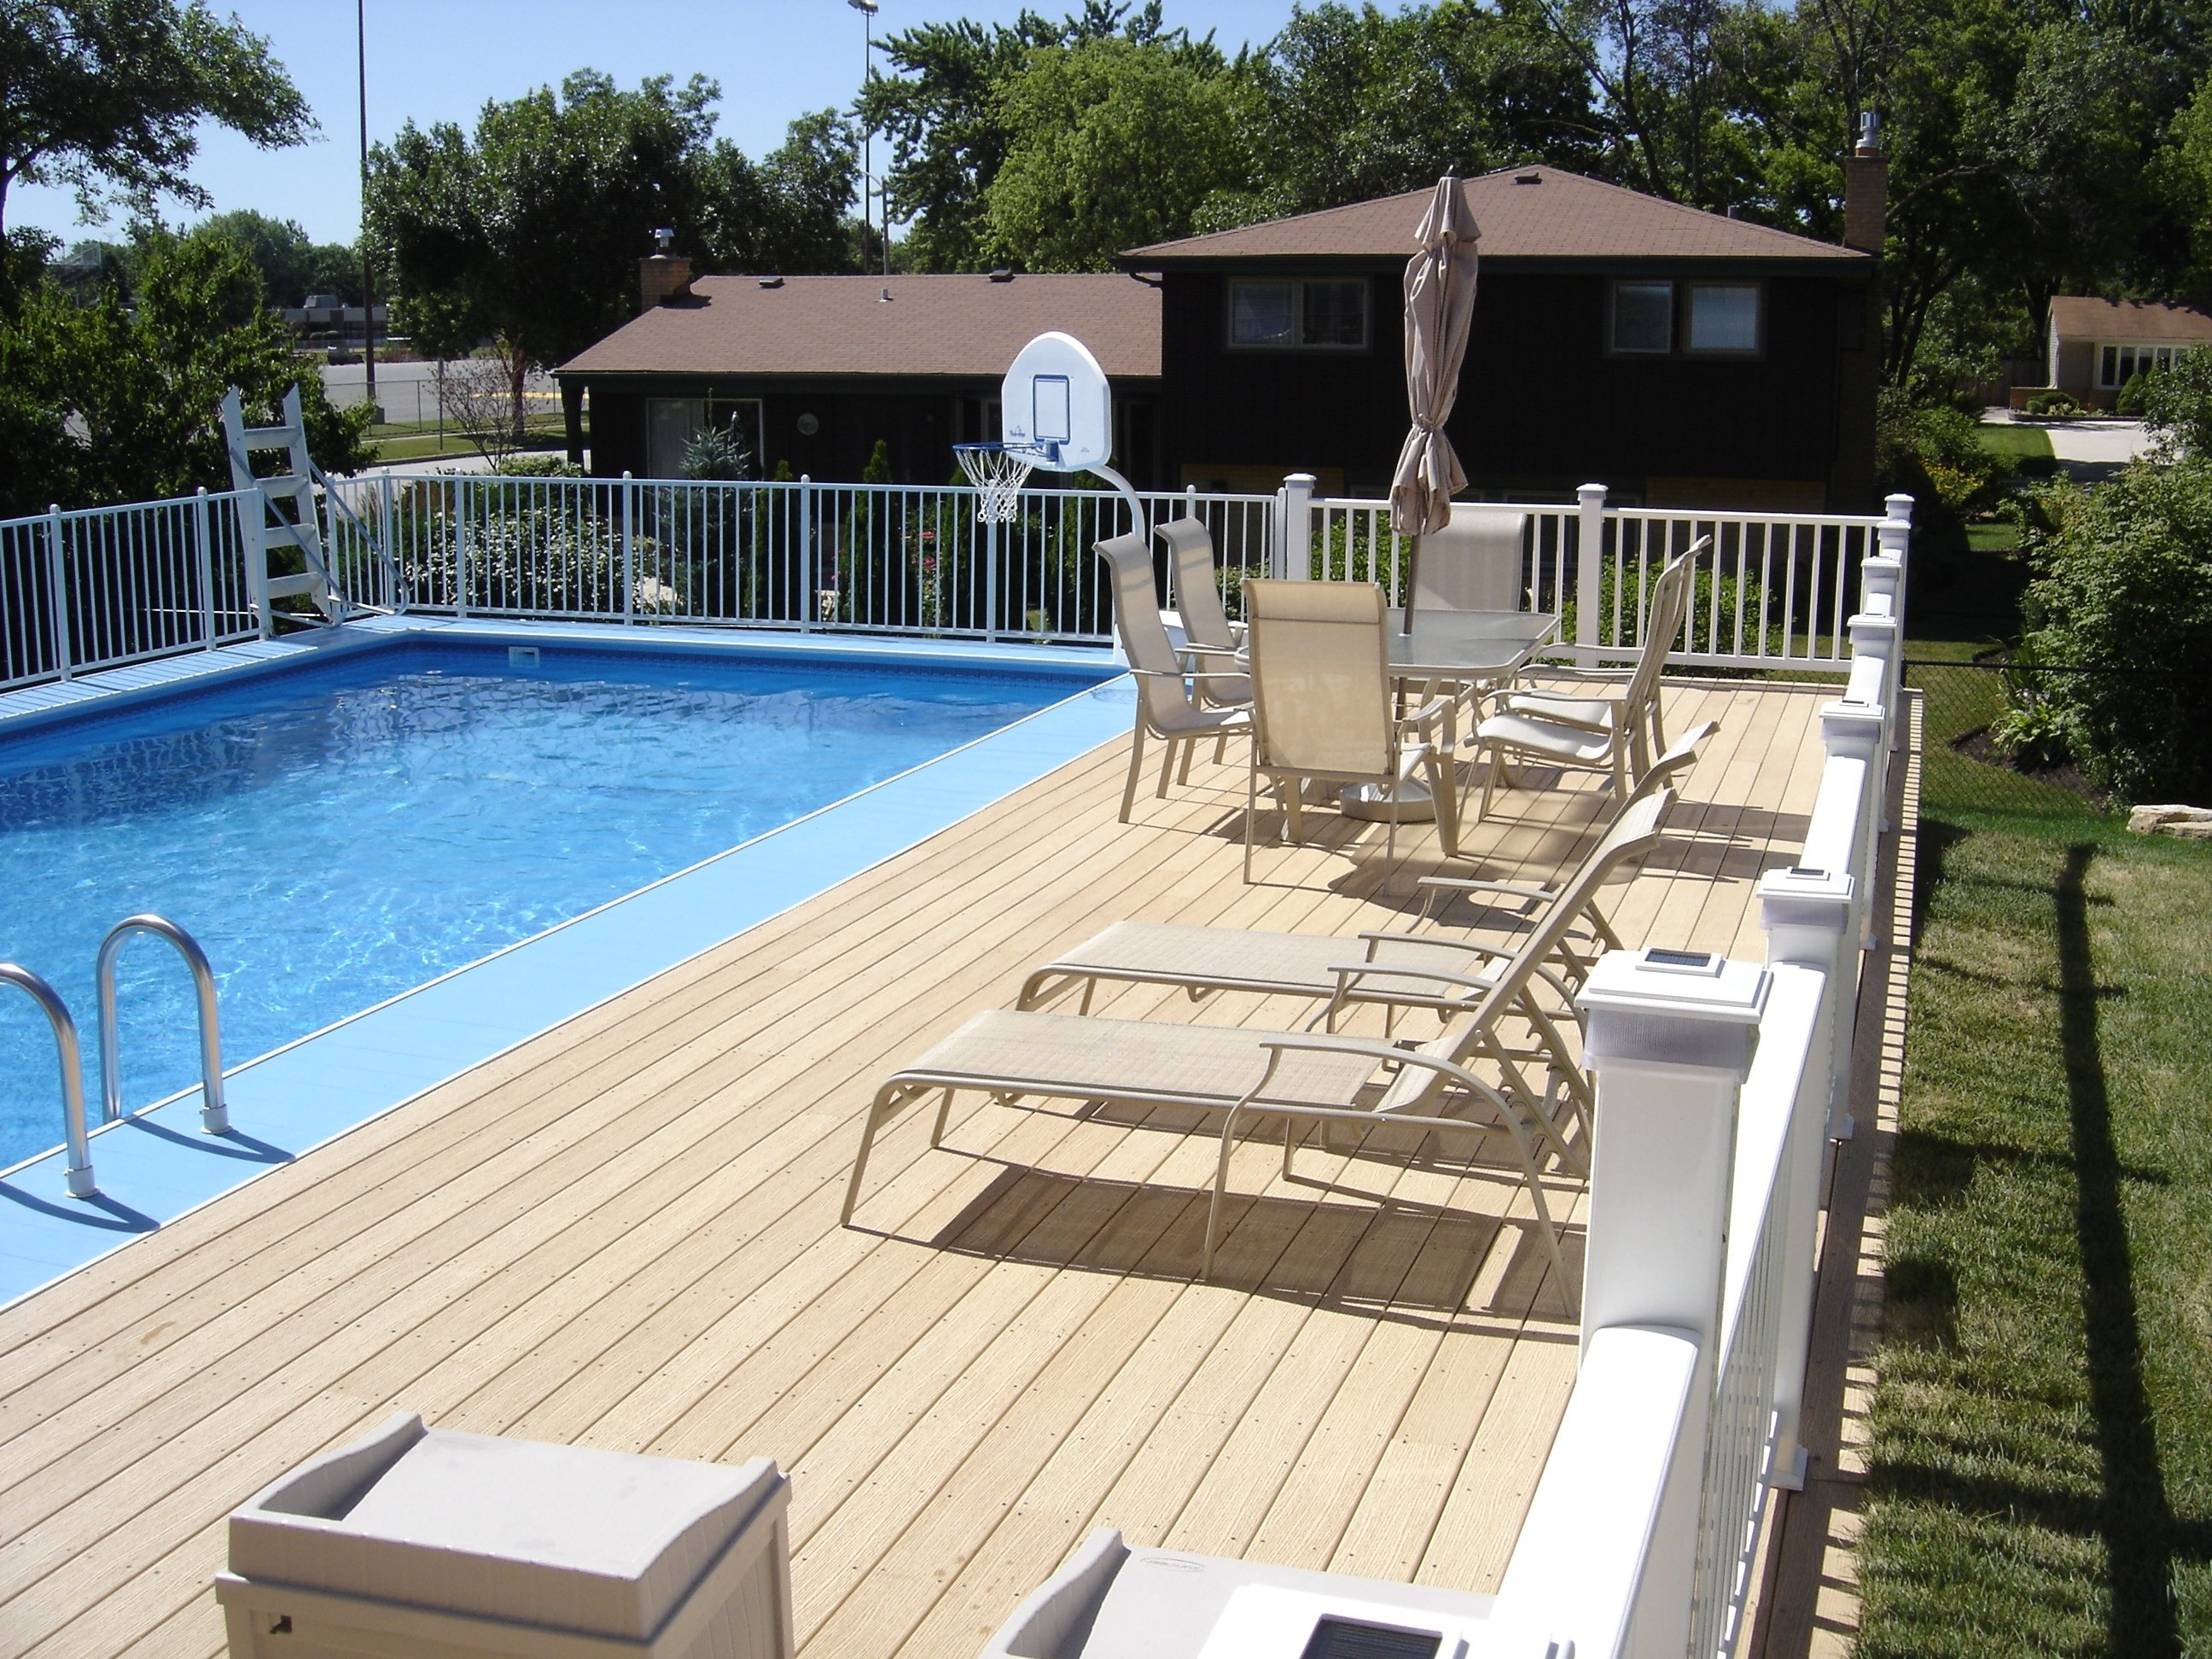 10 Elegant Pool Deck Ideas For Inground Pools deck around above ground pool ideas home decorating and tips loversiq 2021